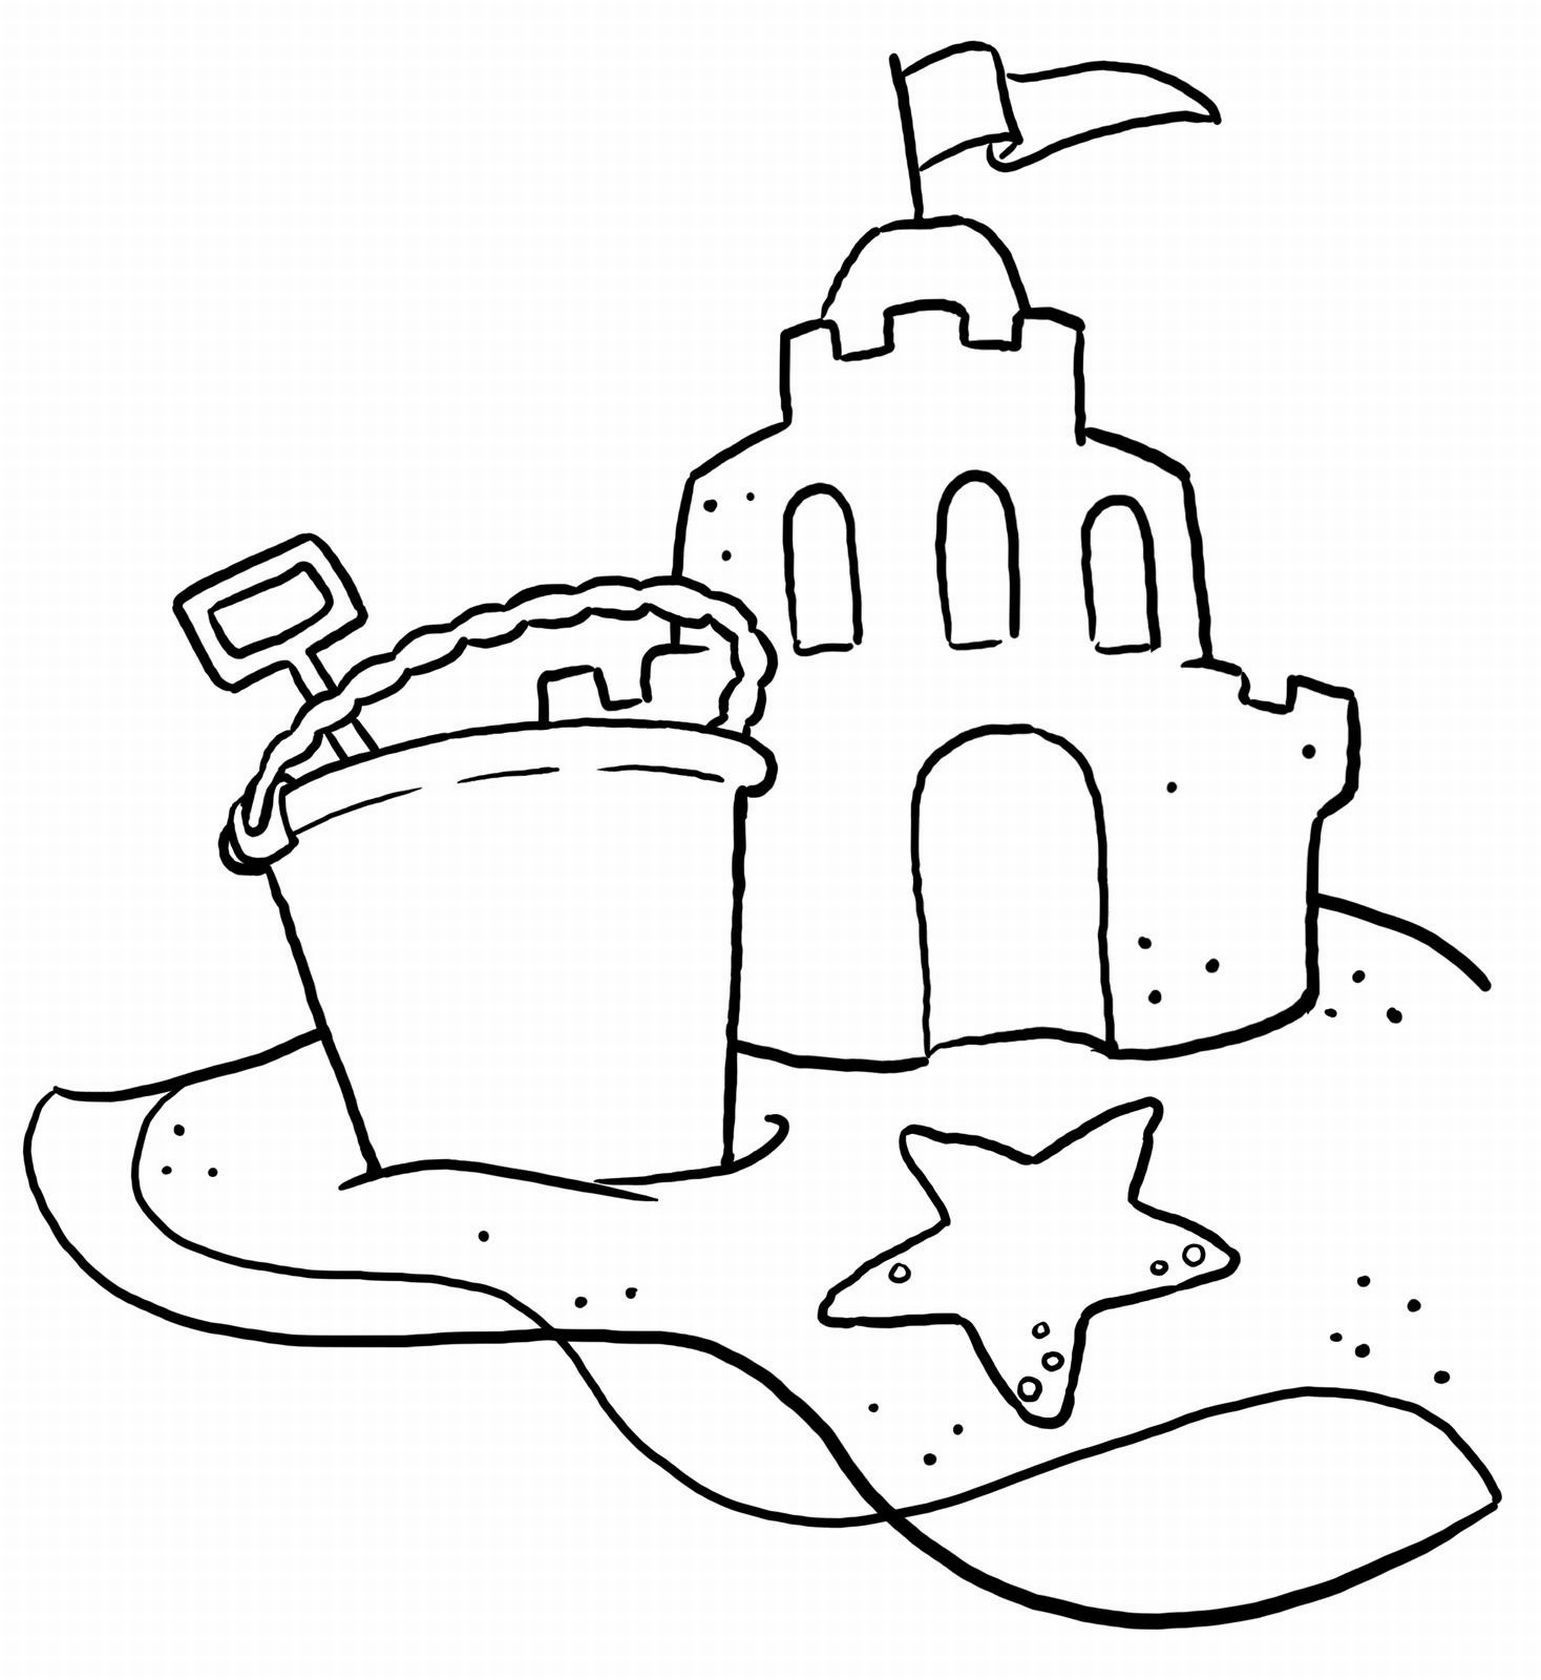 Beach Coloring Pages : 20 Free Printable Sheets To Color | Beach - Free Printable Beach Coloring Pages